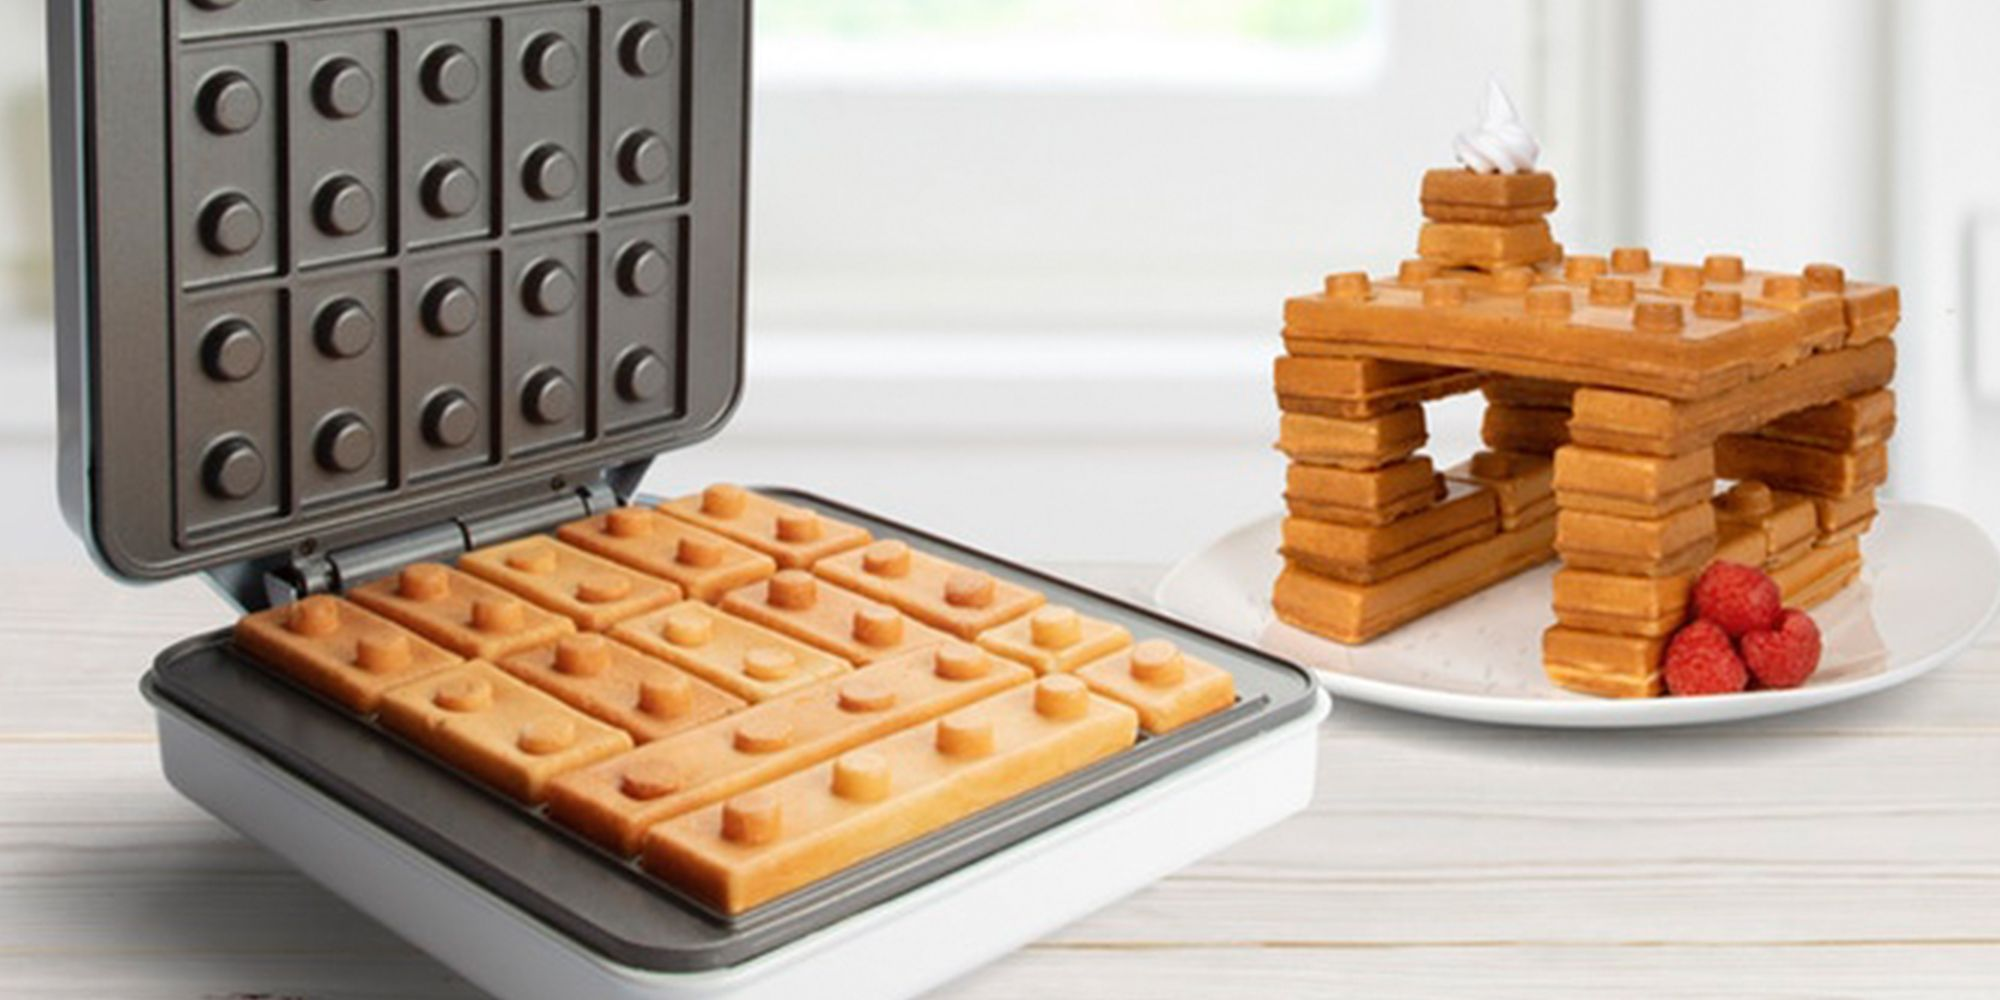 This Lego Waffle Maker Lets You Build A Brick Creation With Your Breakfast